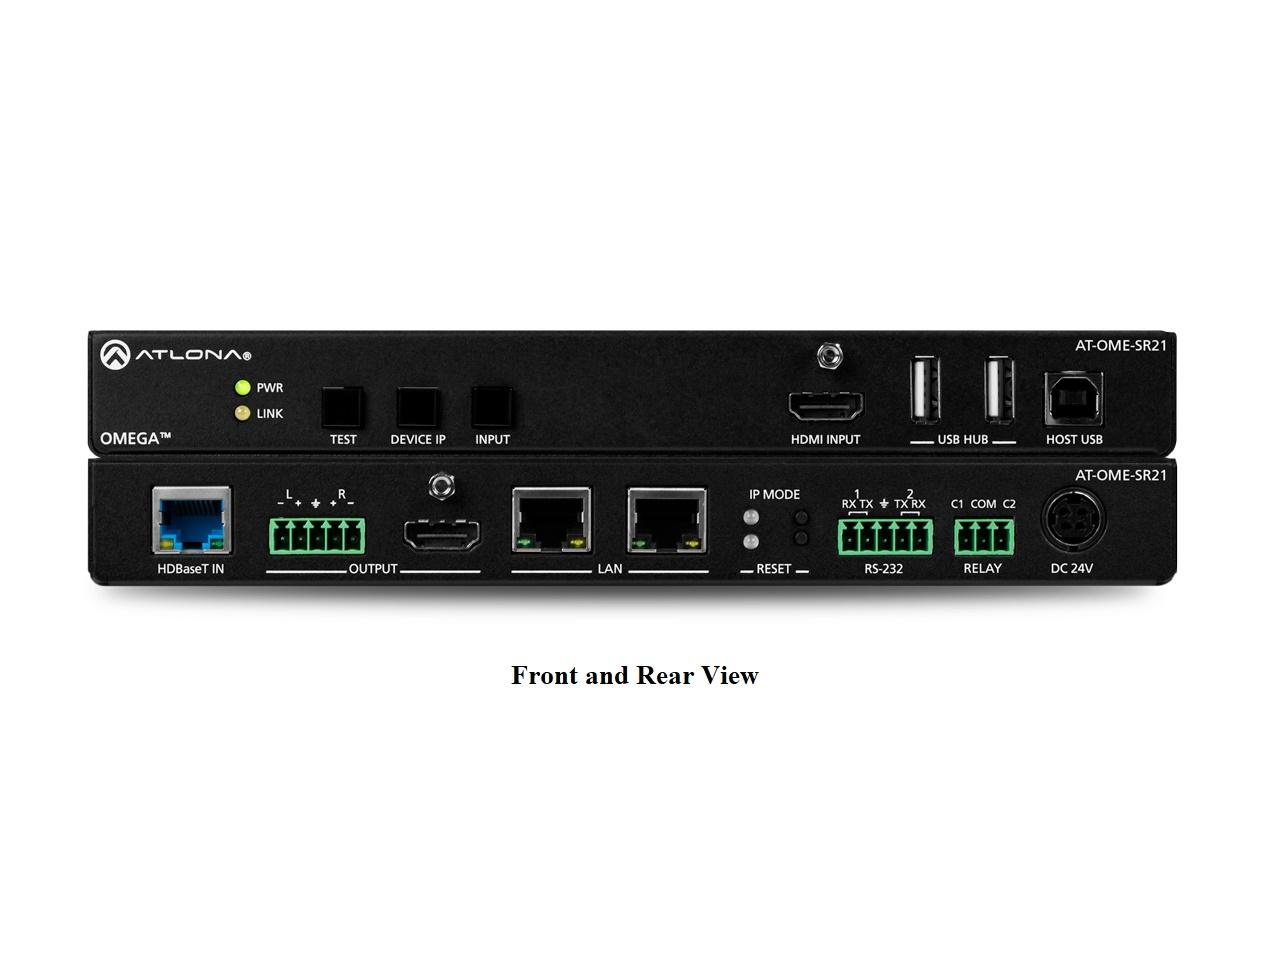 Atlona AT-OME-SR21 Omega 4K/UHD Scaler for HDBaseT and HDMI with USB